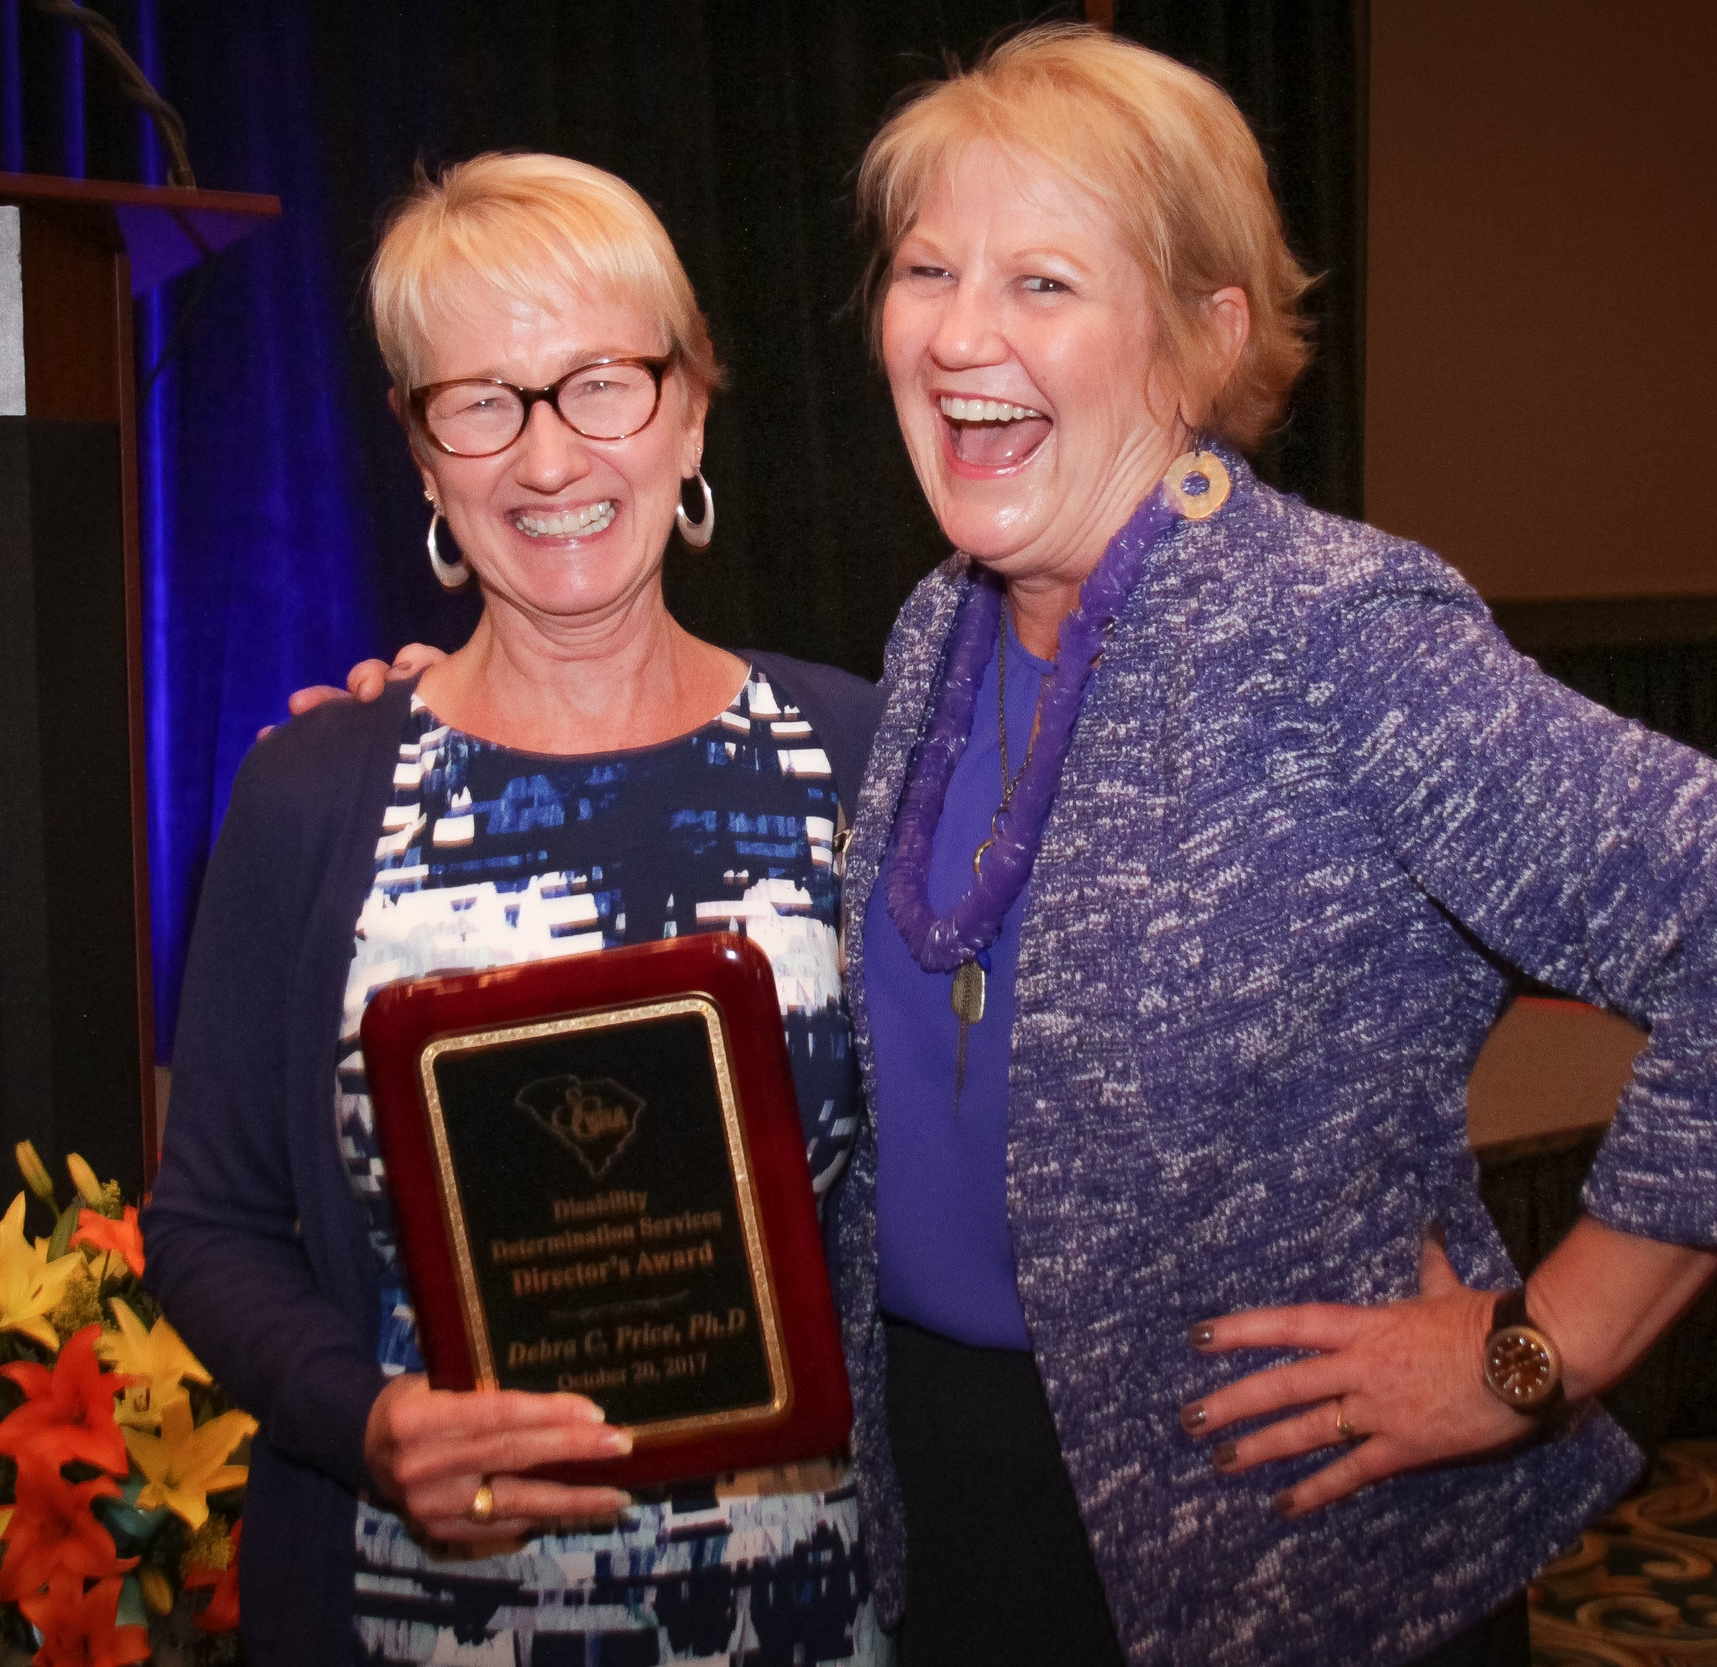 Debra C. Price (left), Ph.D, Disability Determination Lead Psychological Consultant, accepts the DDS Director's Award from Shirley Jarrett, Director, Disability Determination Services.